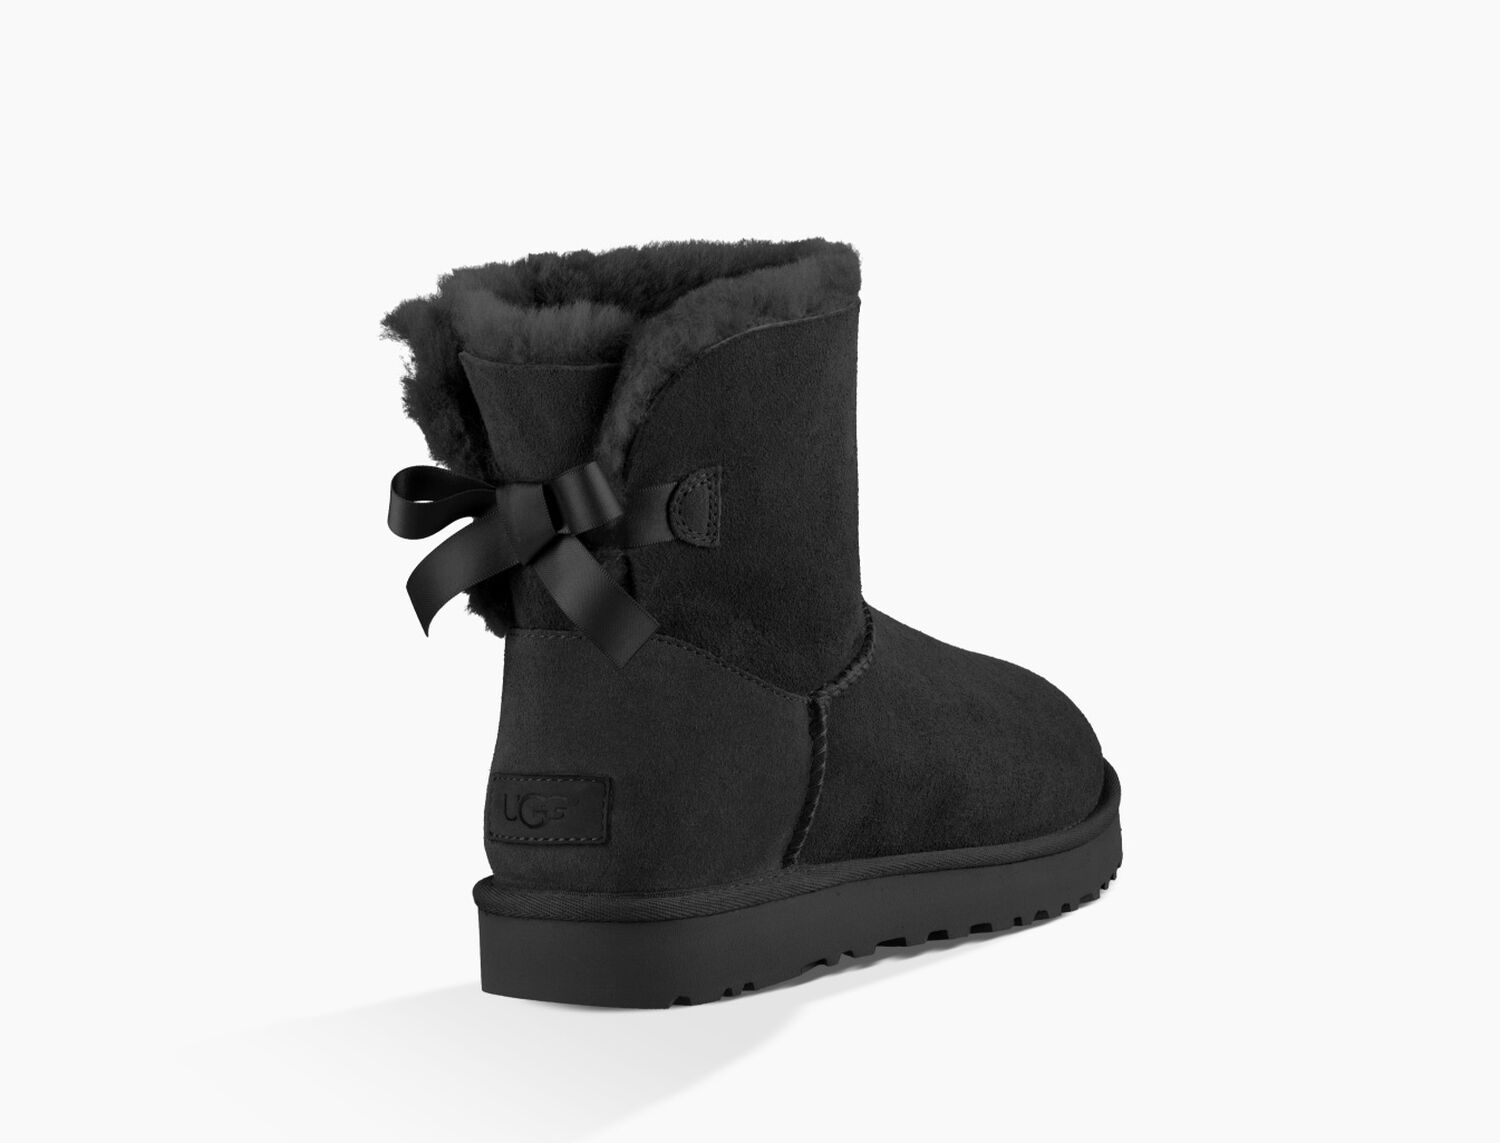 Buy UGG Men's Harkley Winter Boot and other Snow Boots at maitibursi.tk Our wide selection is eligible for free shipping and free returns.